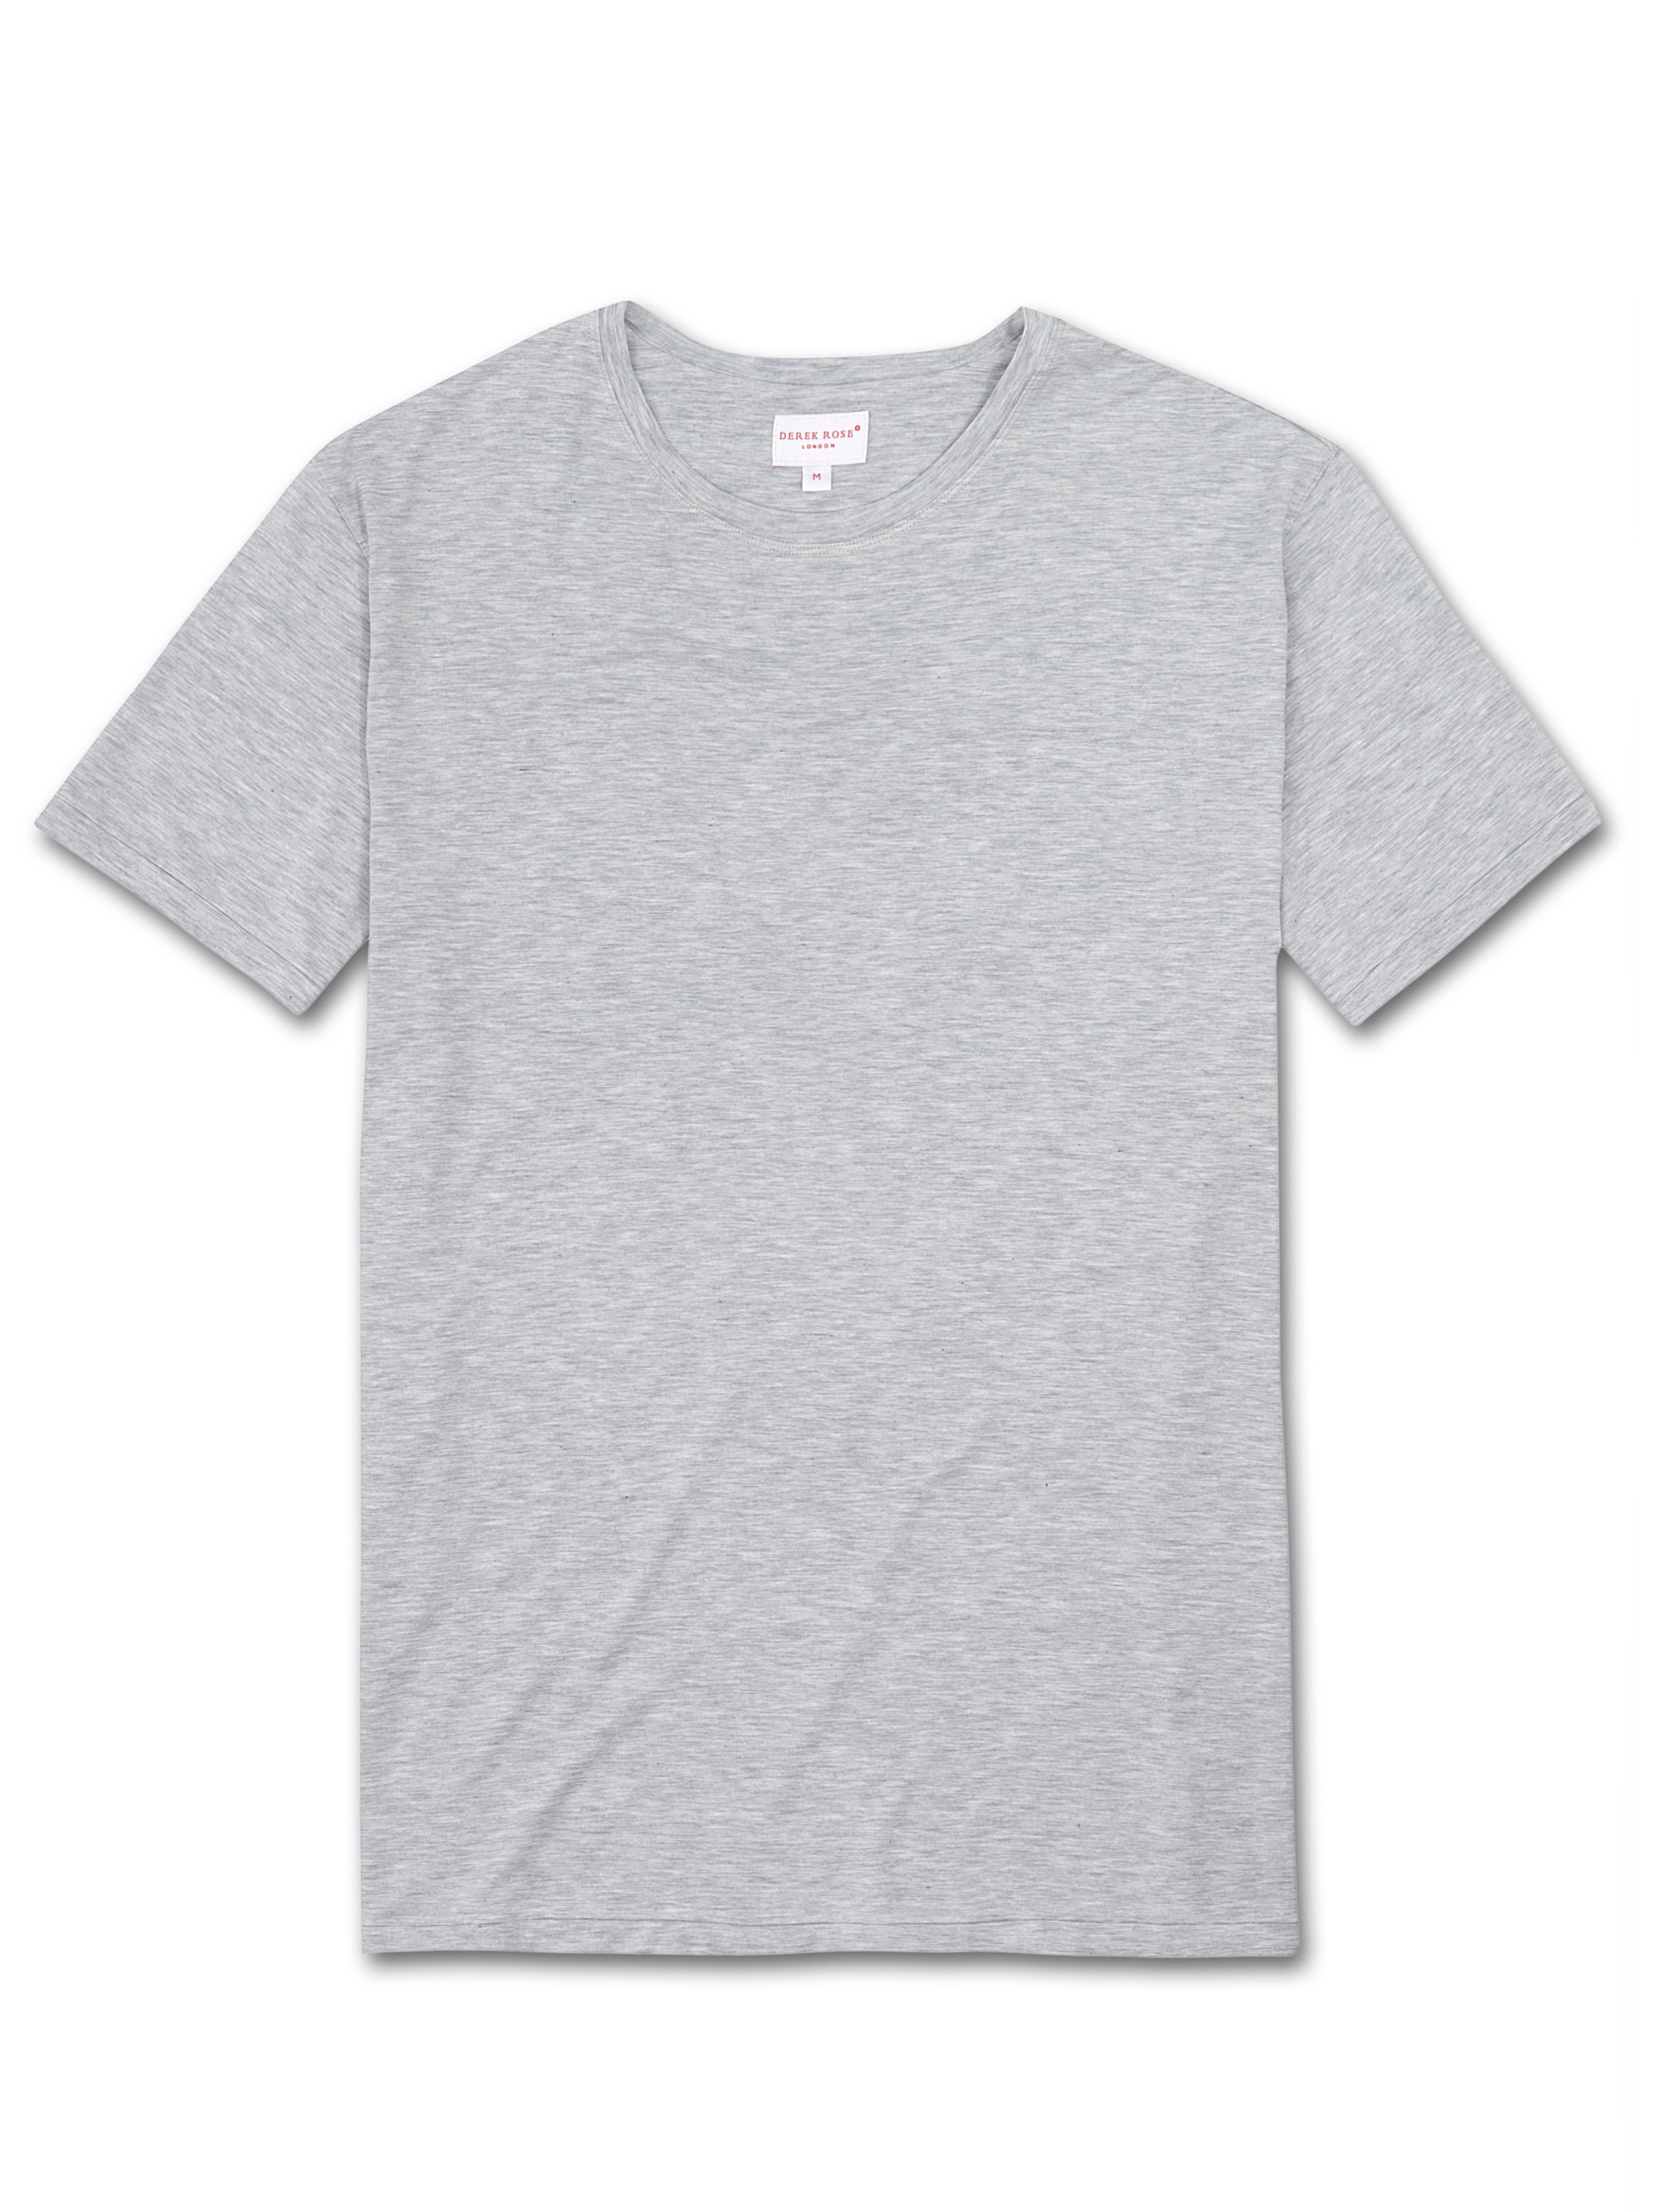 Men's Short Sleeve T-Shirt Ethan Micro Modal Stretch Silver